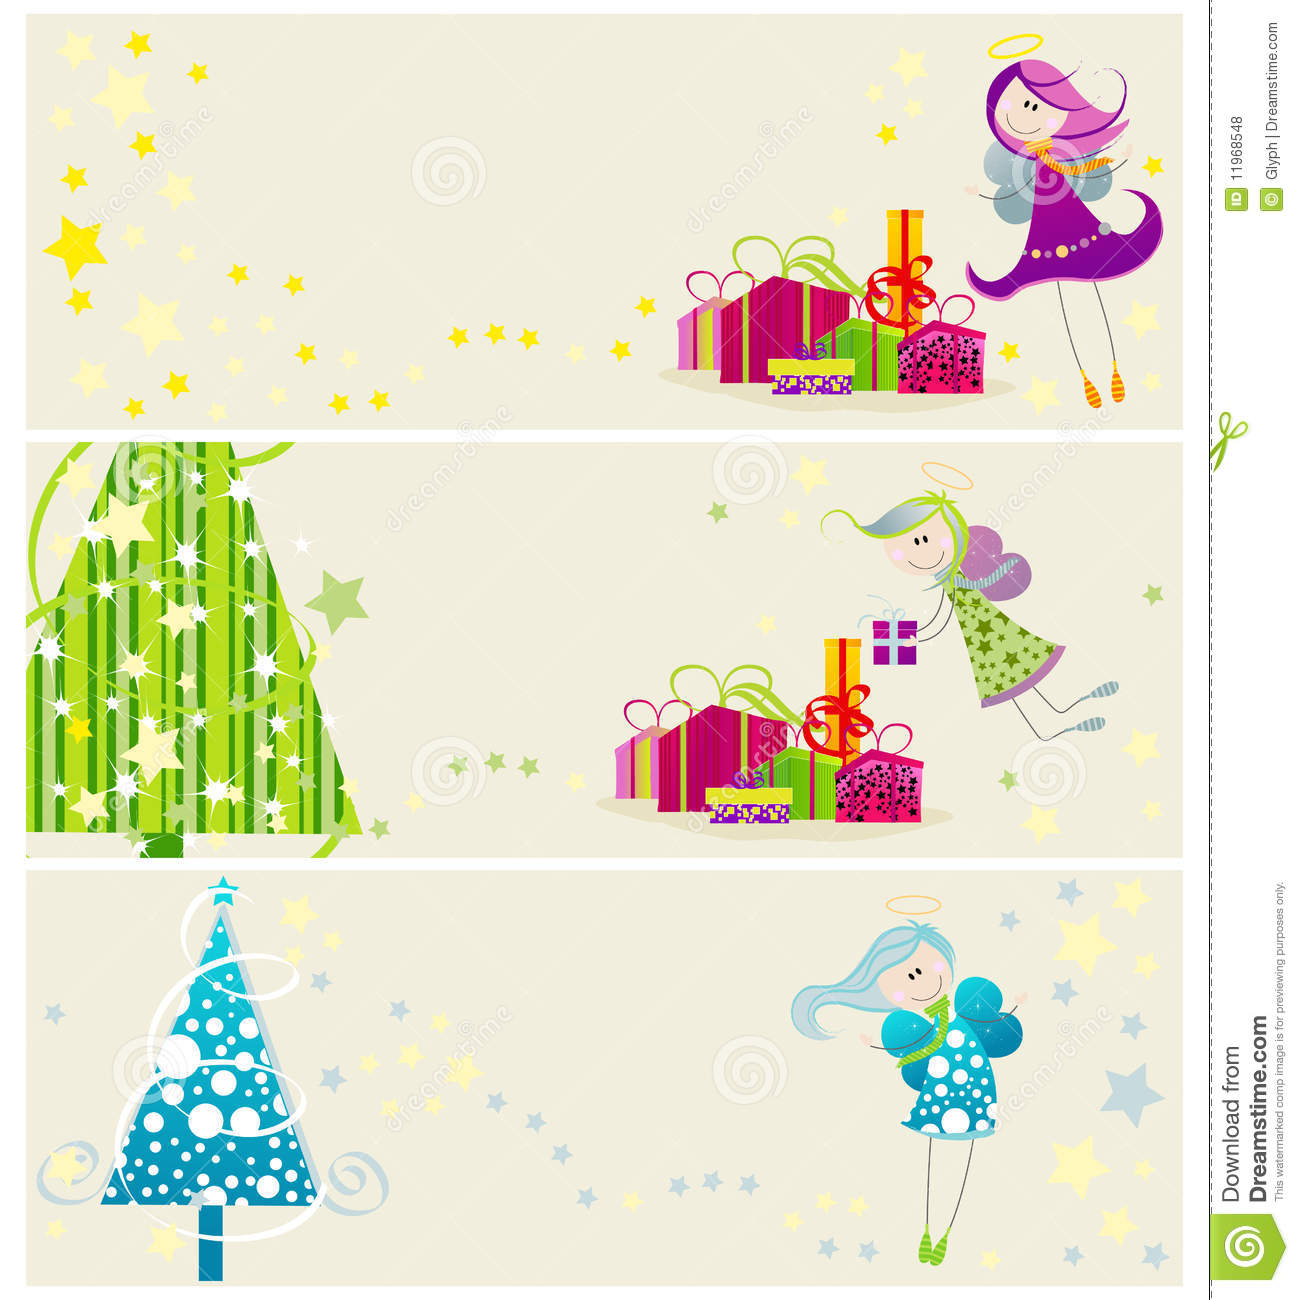 Cute Christmas Web Banners Royalty Free Stock Photos ...